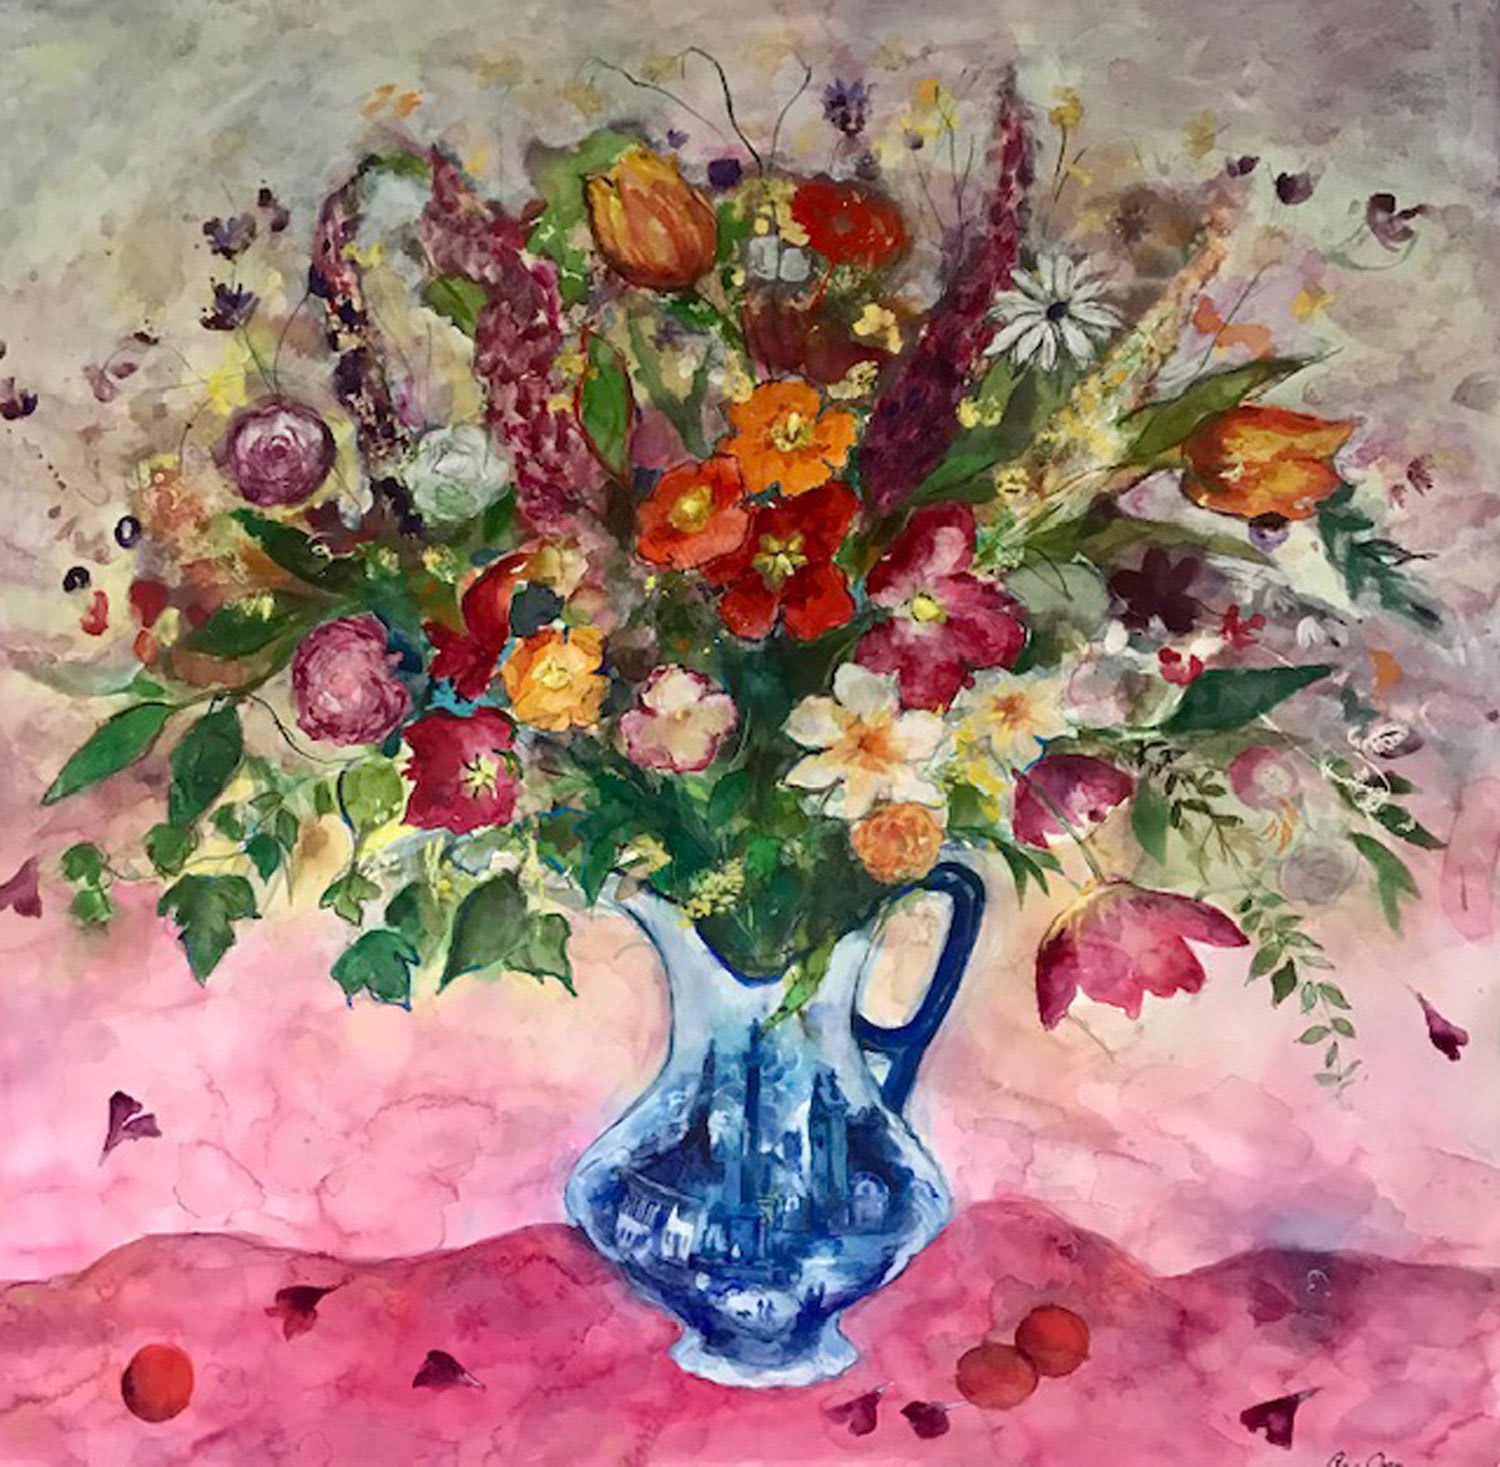 Ann Oram, Ballater: Summer Flowers and Petals